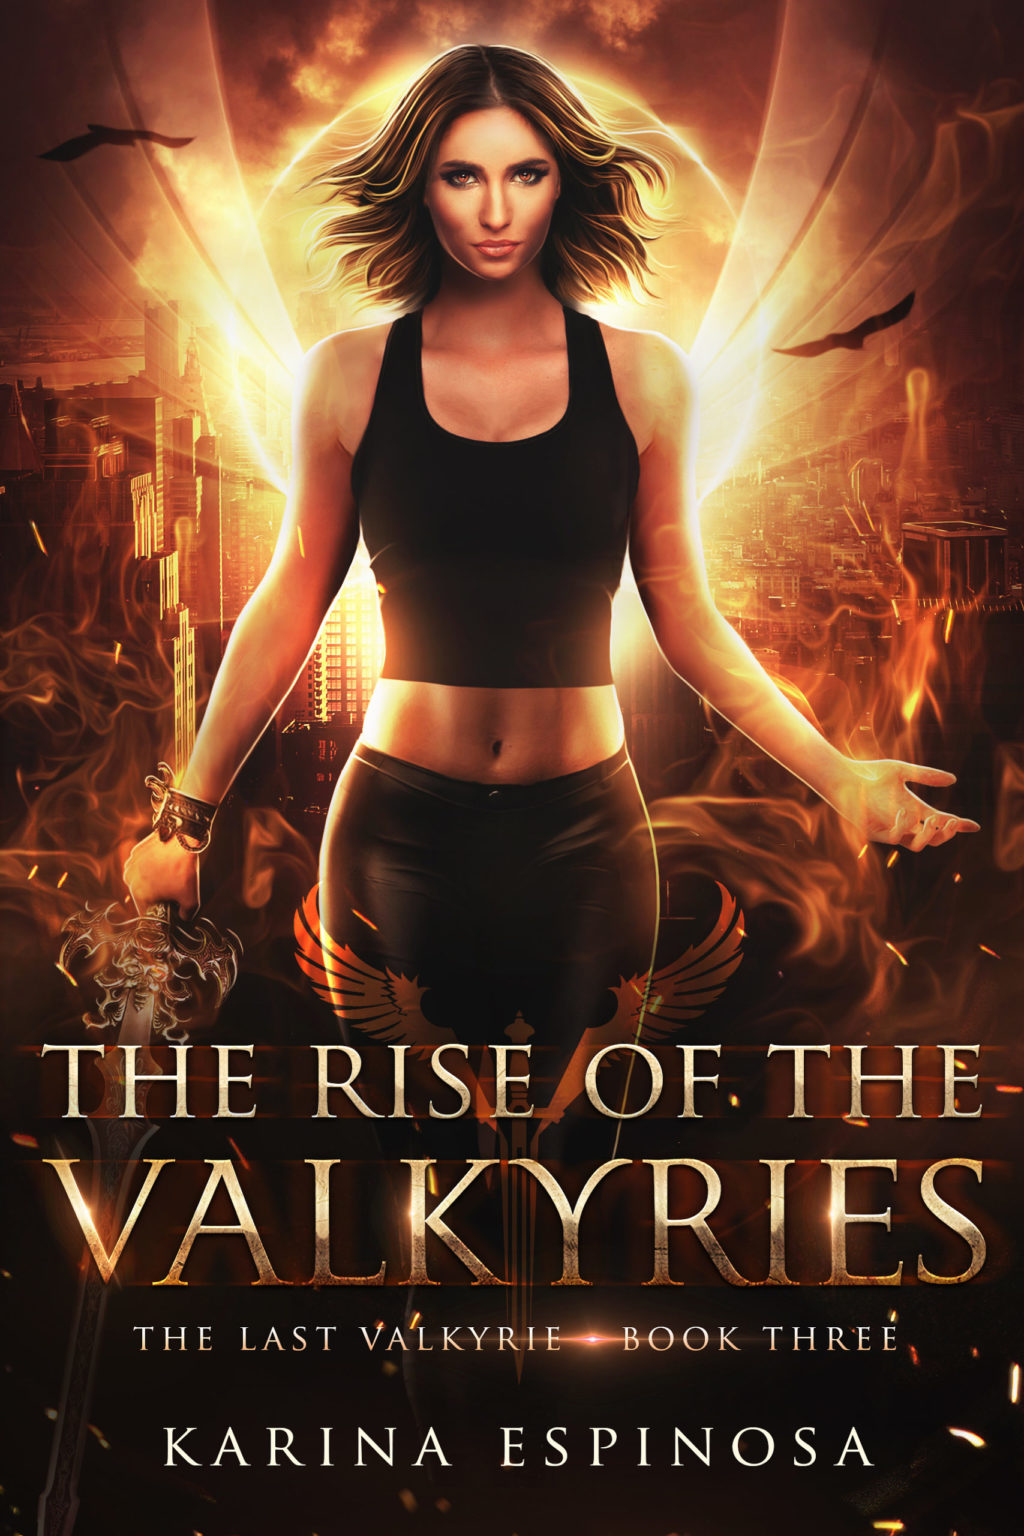 The Rise of the Valkyries (The Last Valkyrie #3) by Karina Espinosa